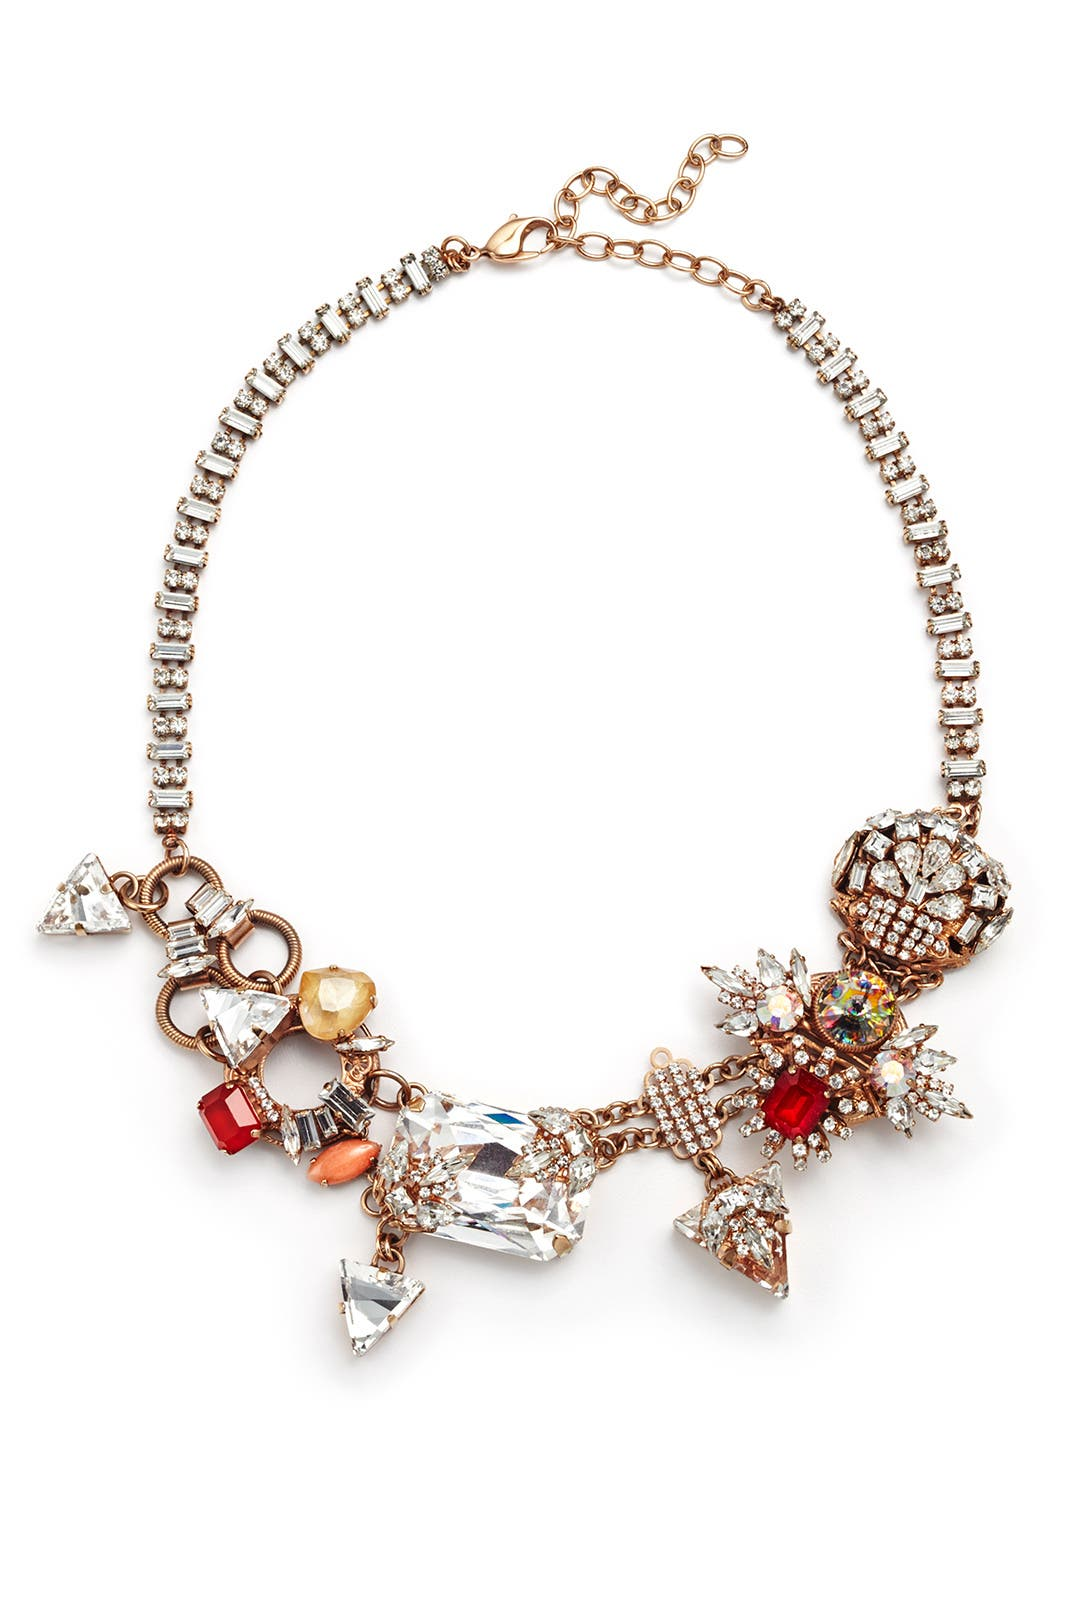 In the Mood for Love Necklace by Erickson Beamon